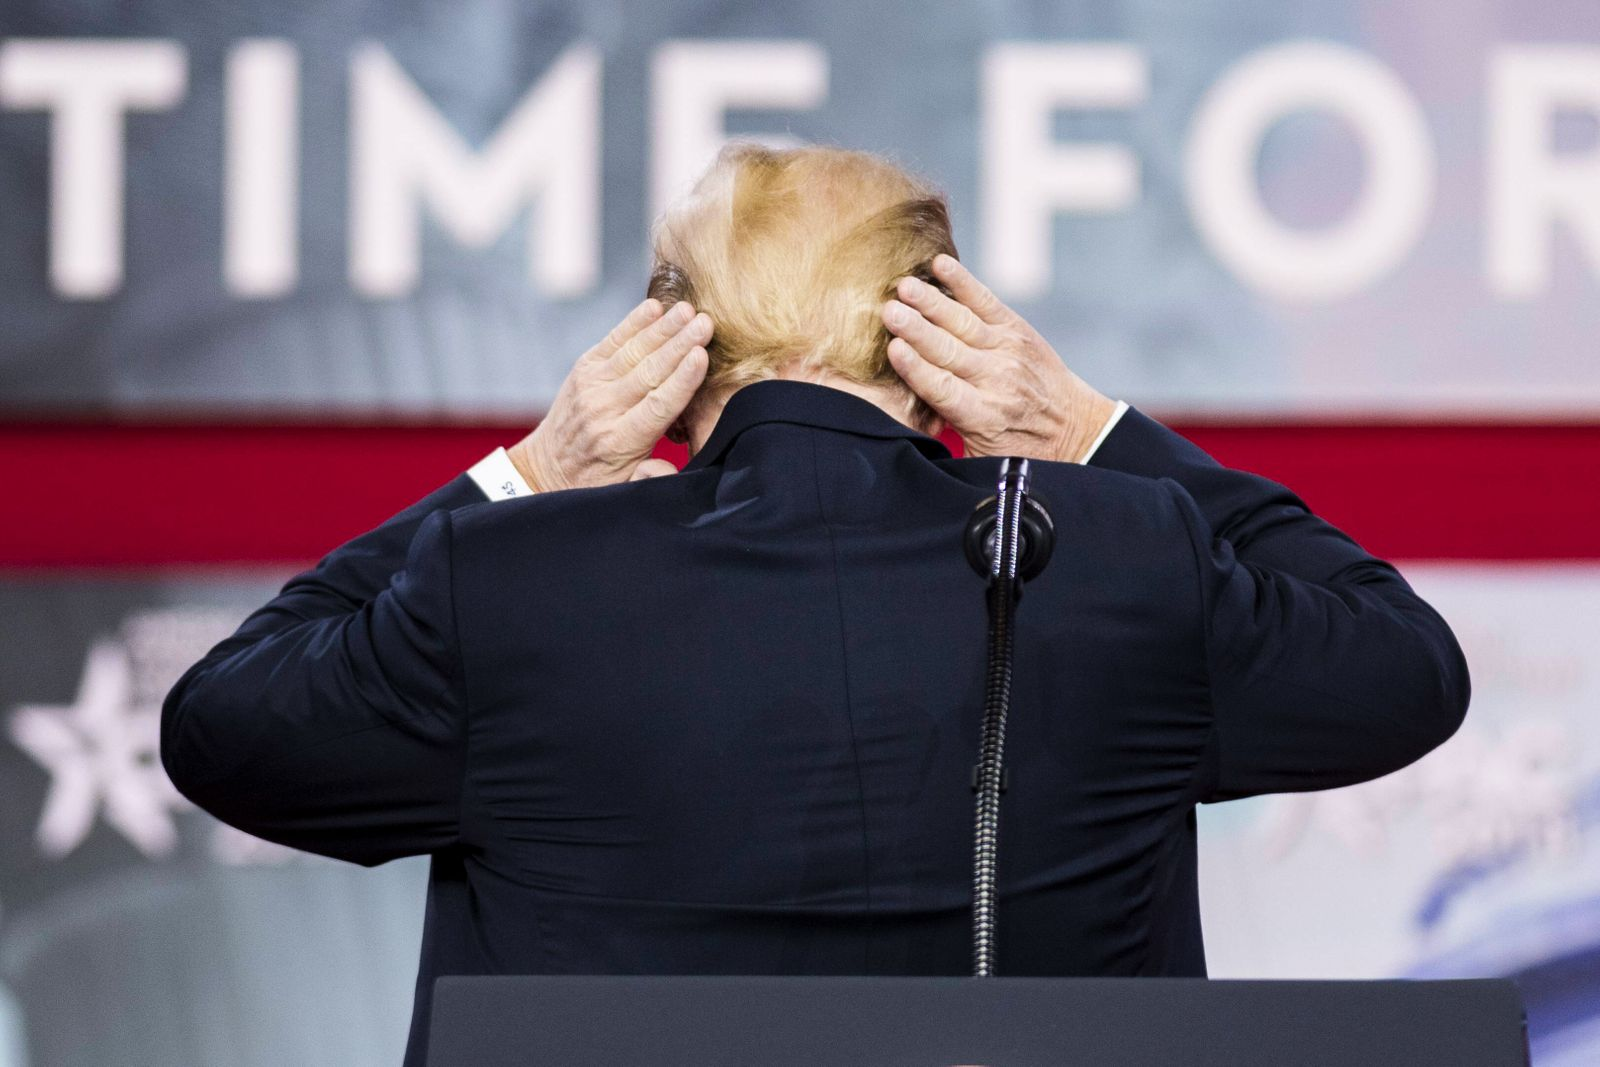 February 23 2018 Oxon Hill MD U S President DONALD TRUMP showing off his hair at the Conserva